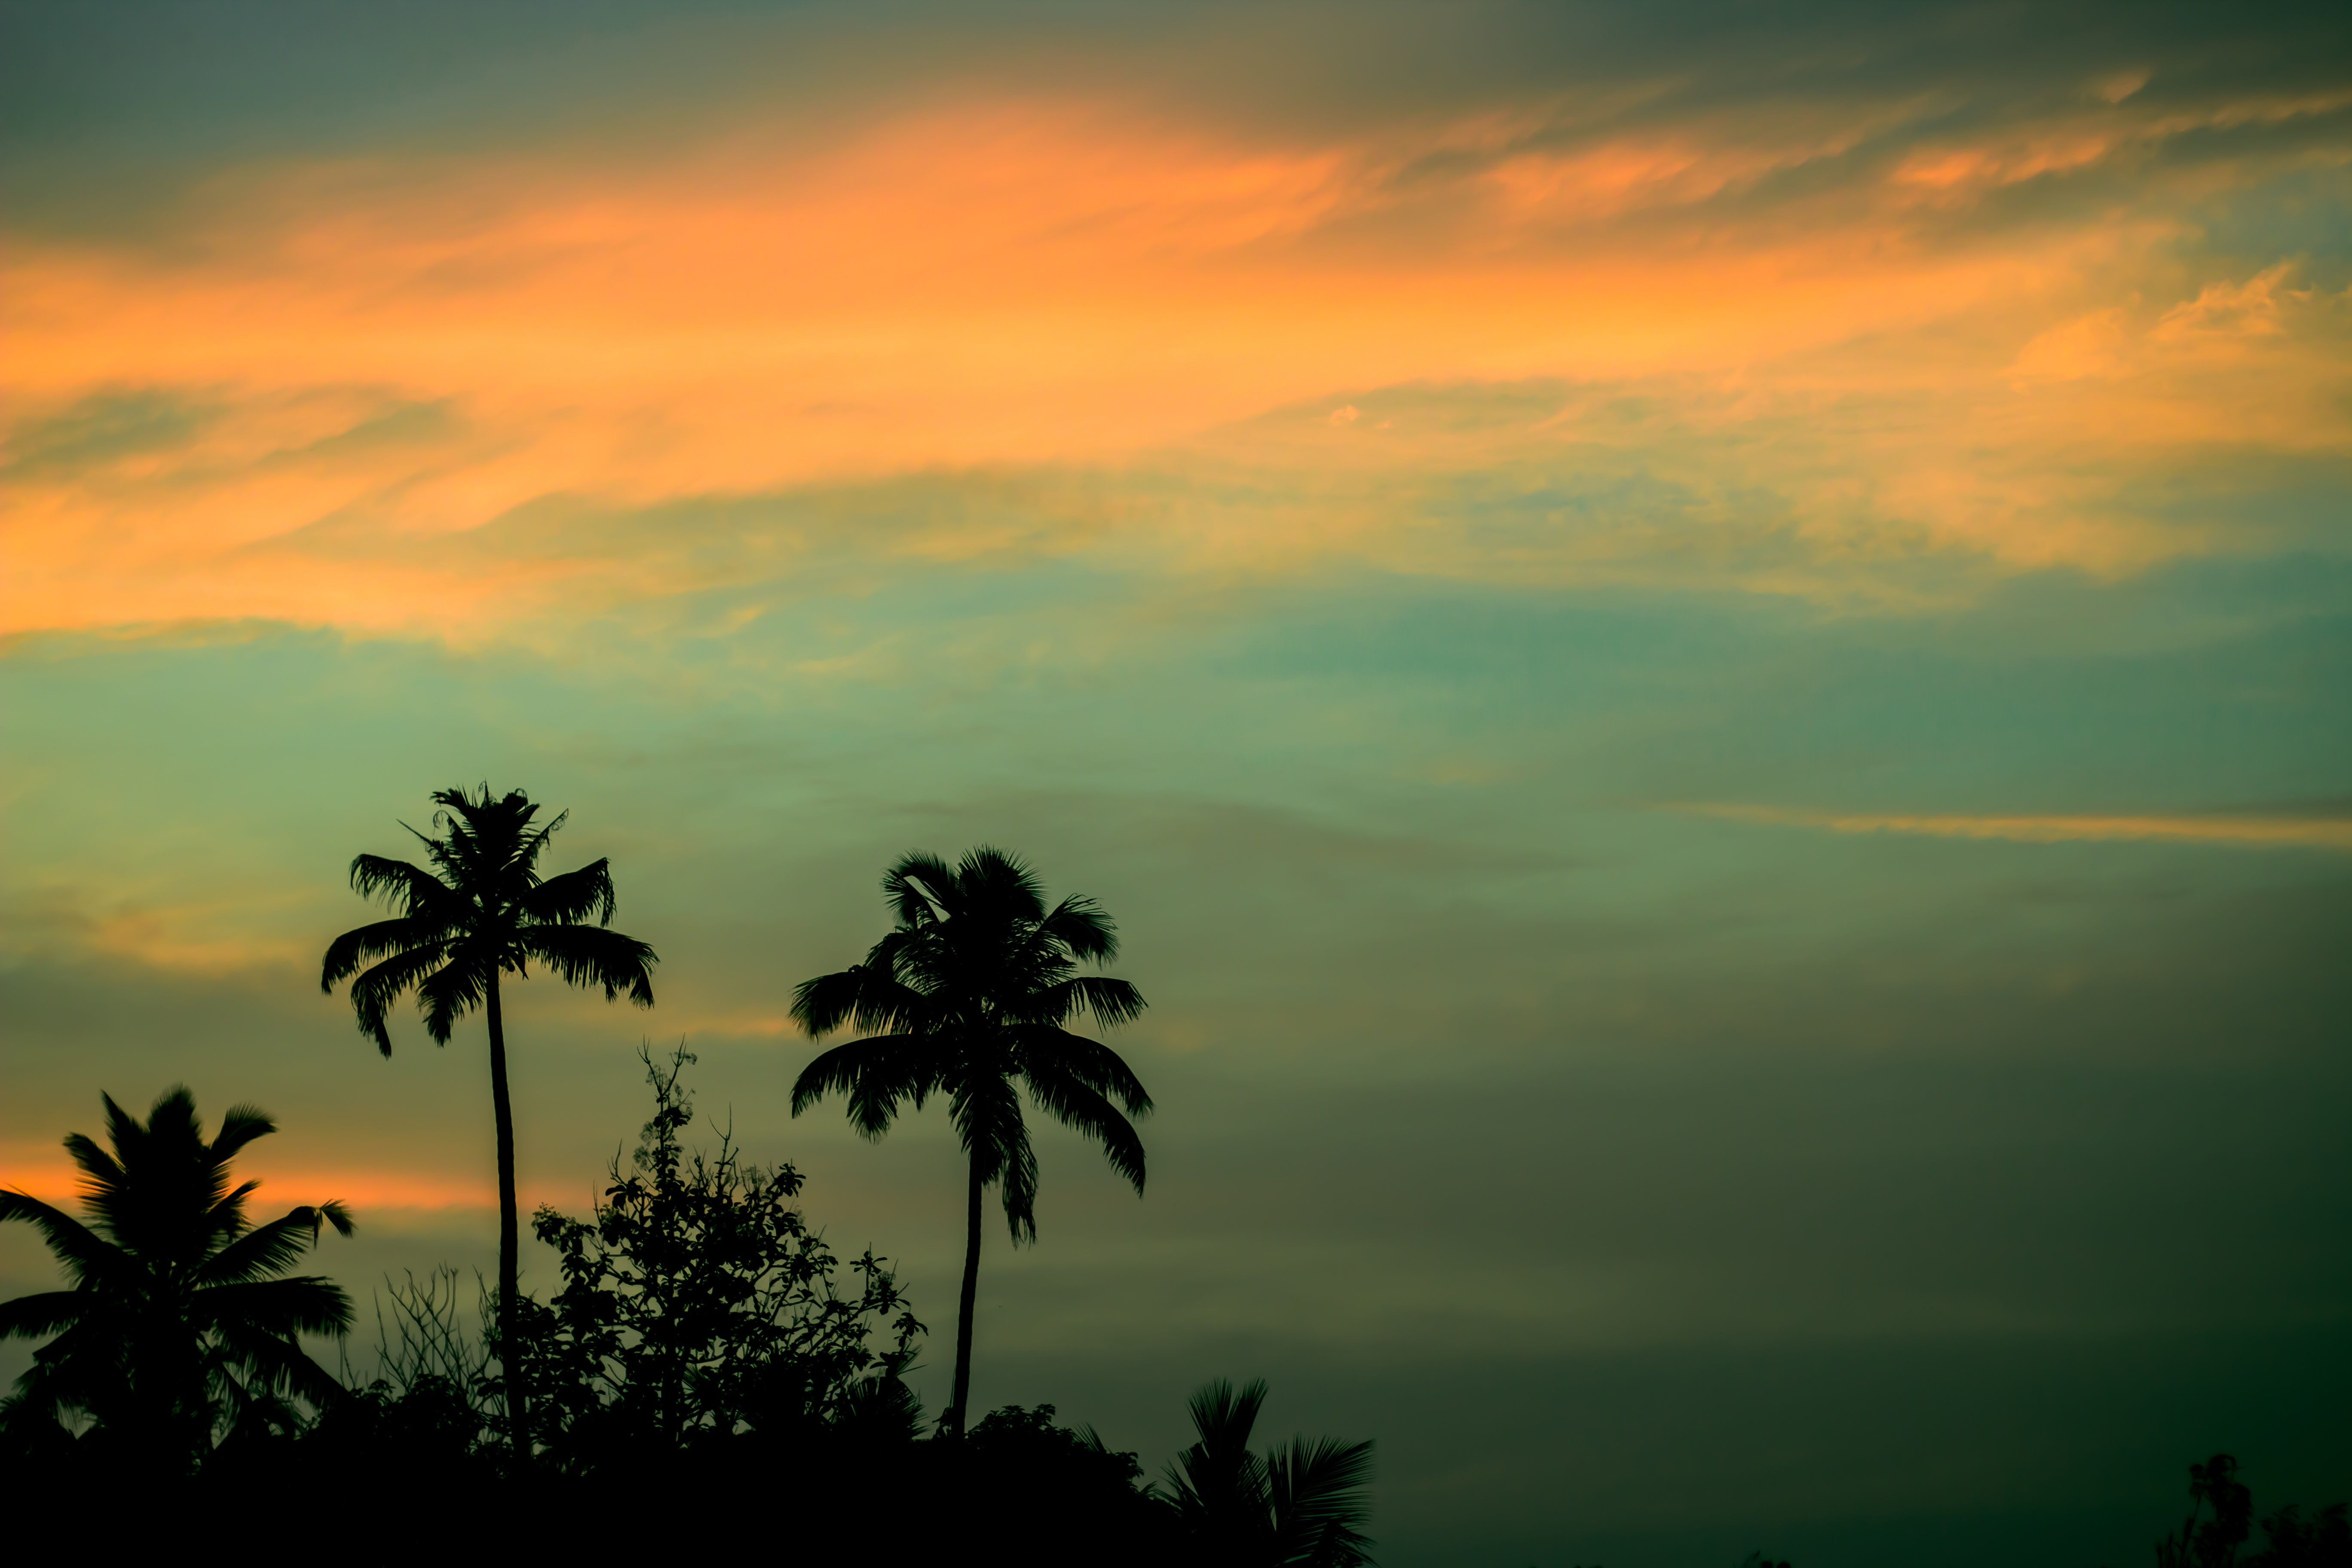 Coconut Tree During Sunset 183 Free Stock Photo